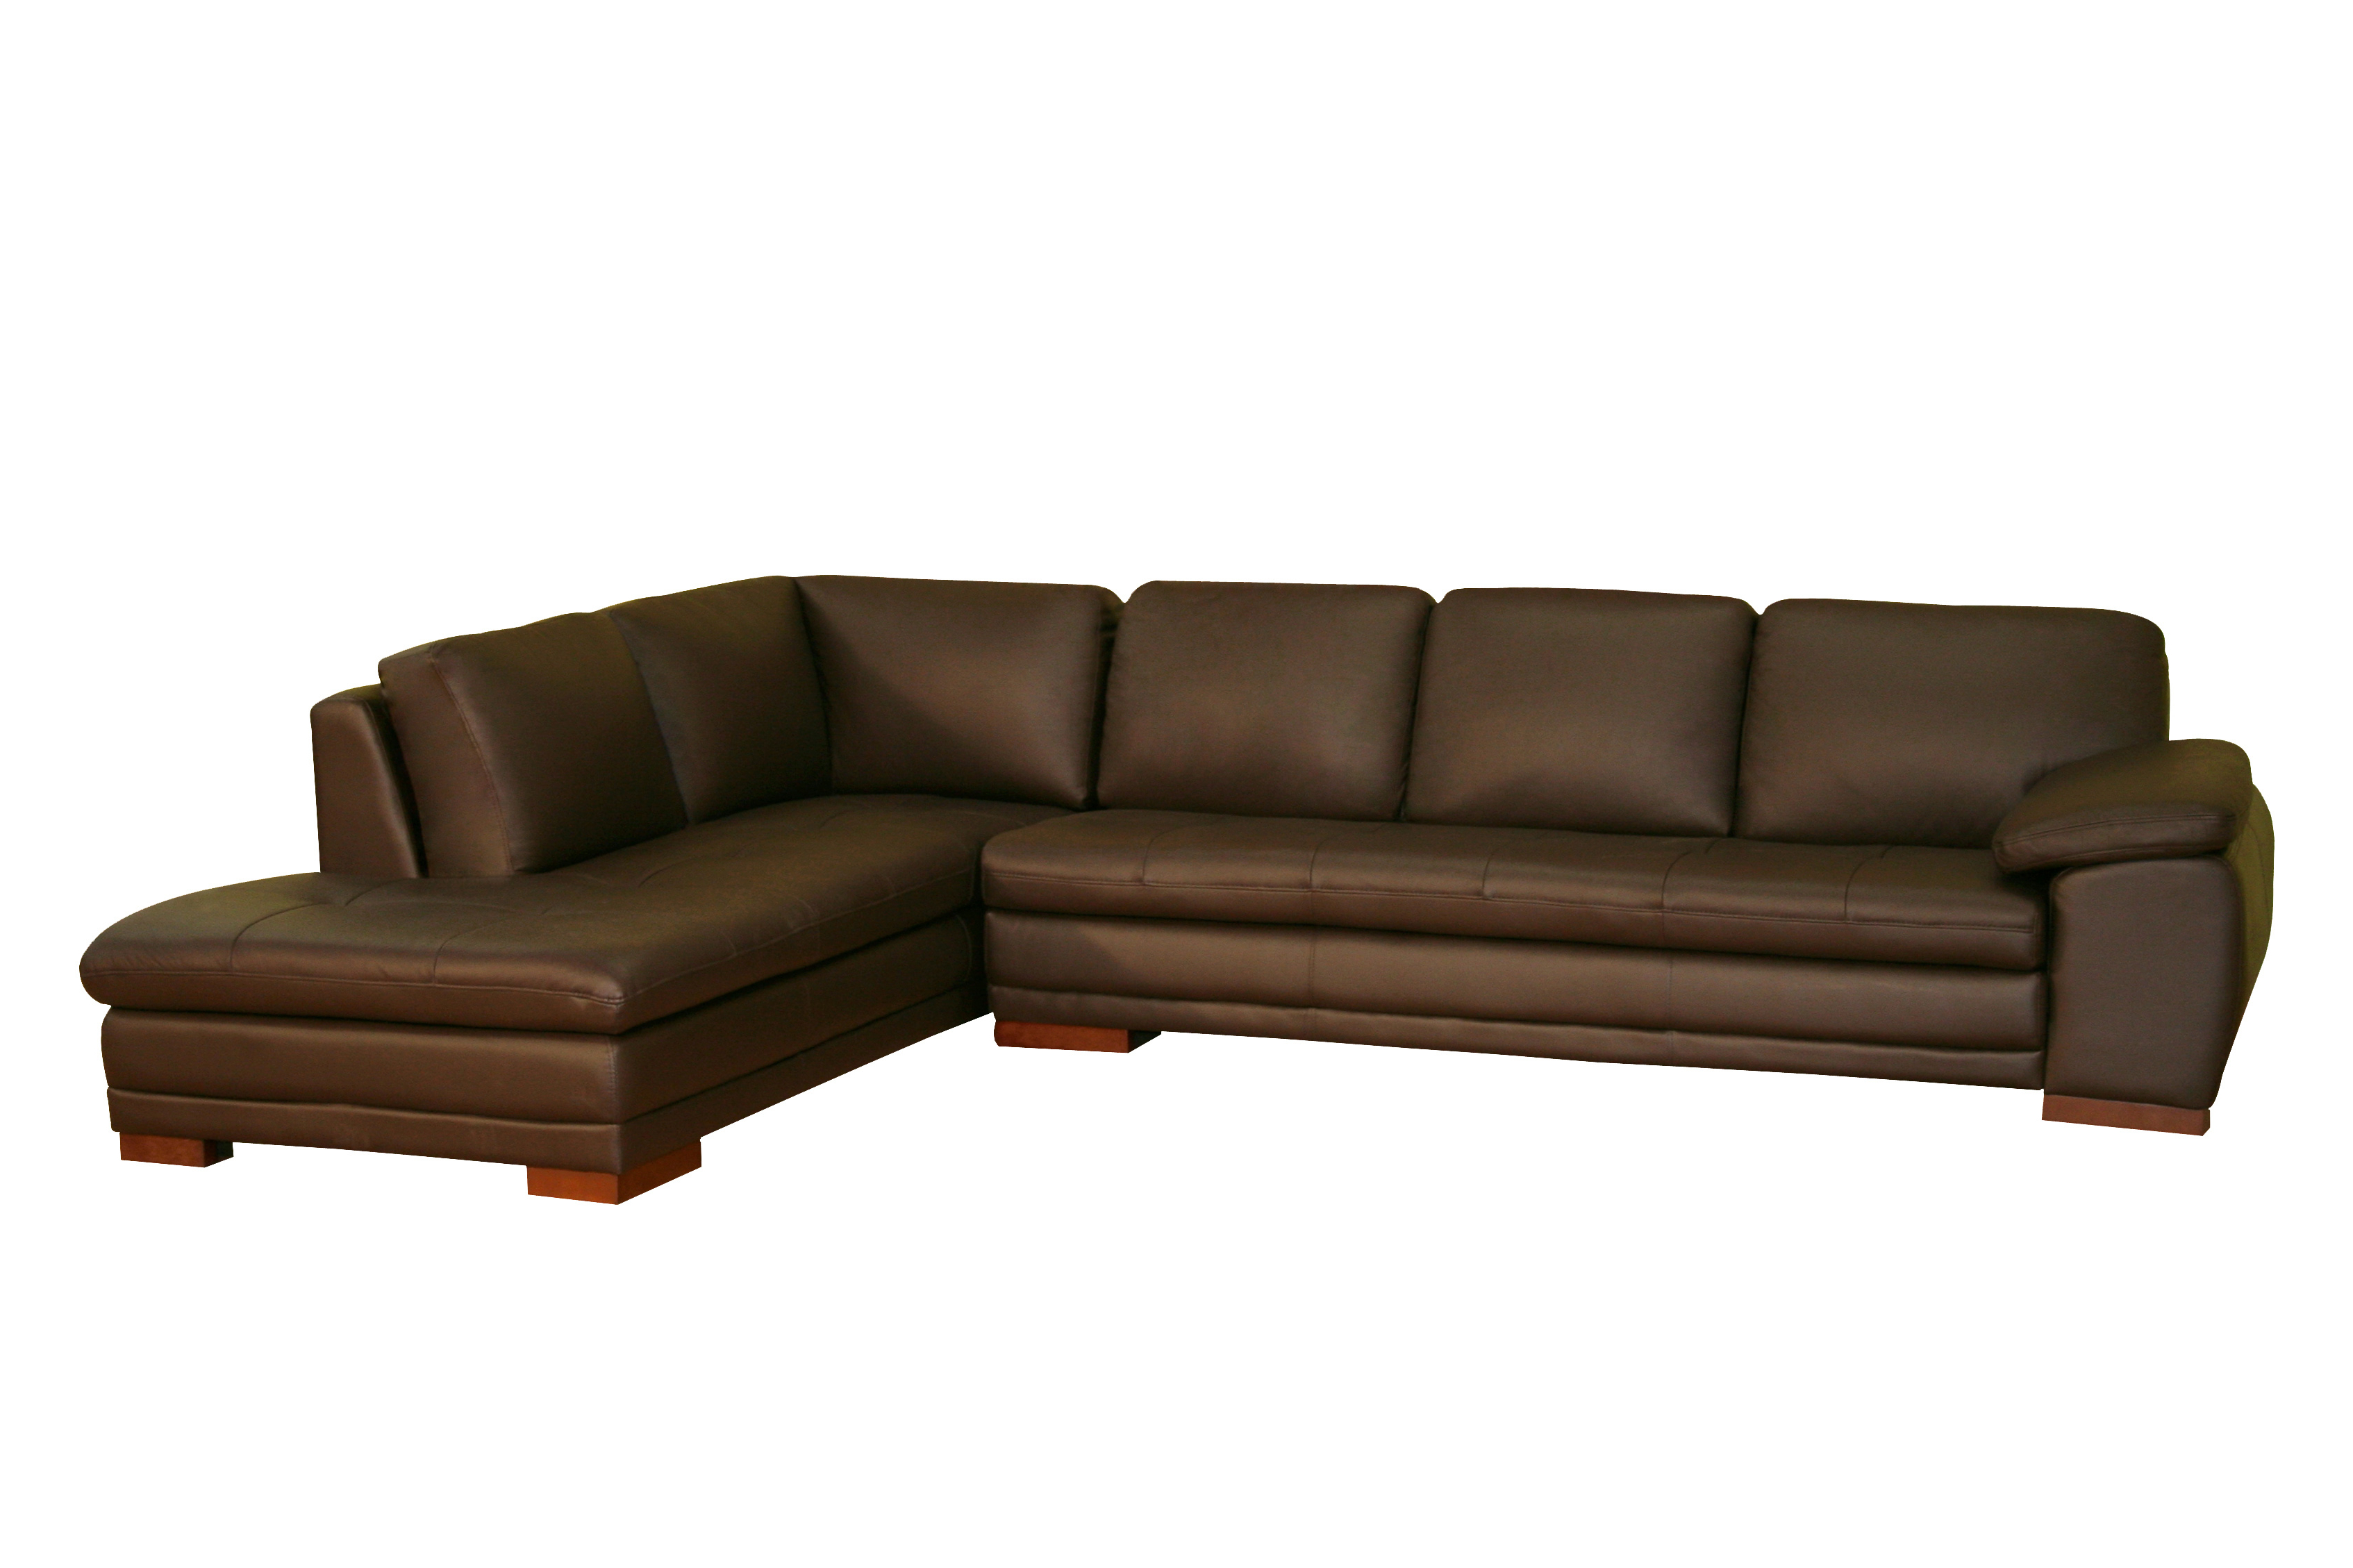 Fashionable Sectional Sofa With Chaise Lounge (Gallery 11 of 20)